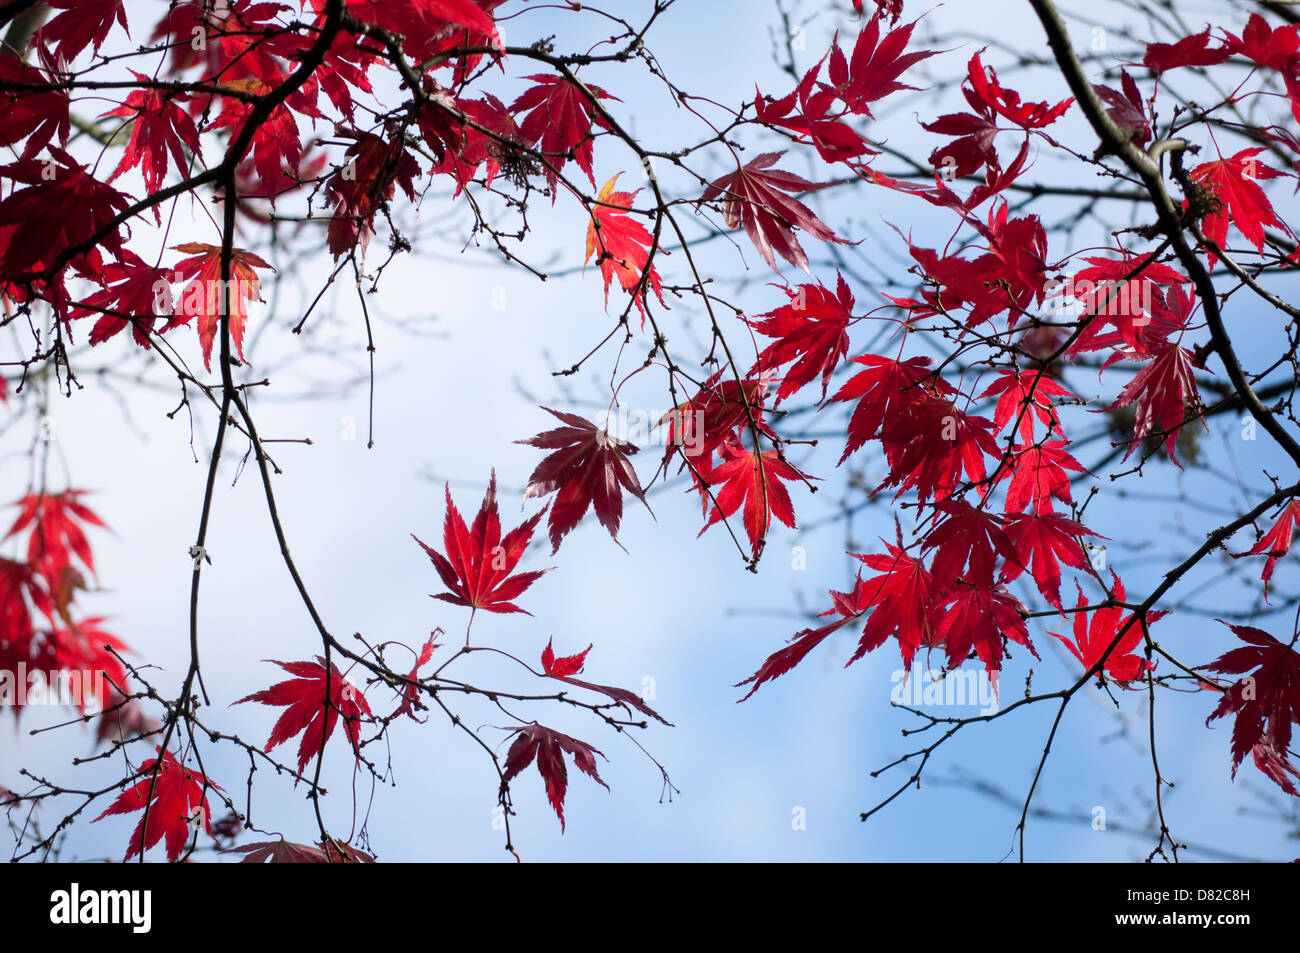 Japanese Maple with Red leaves and twigs silhouetted against a pale blue sky. - Stock Image